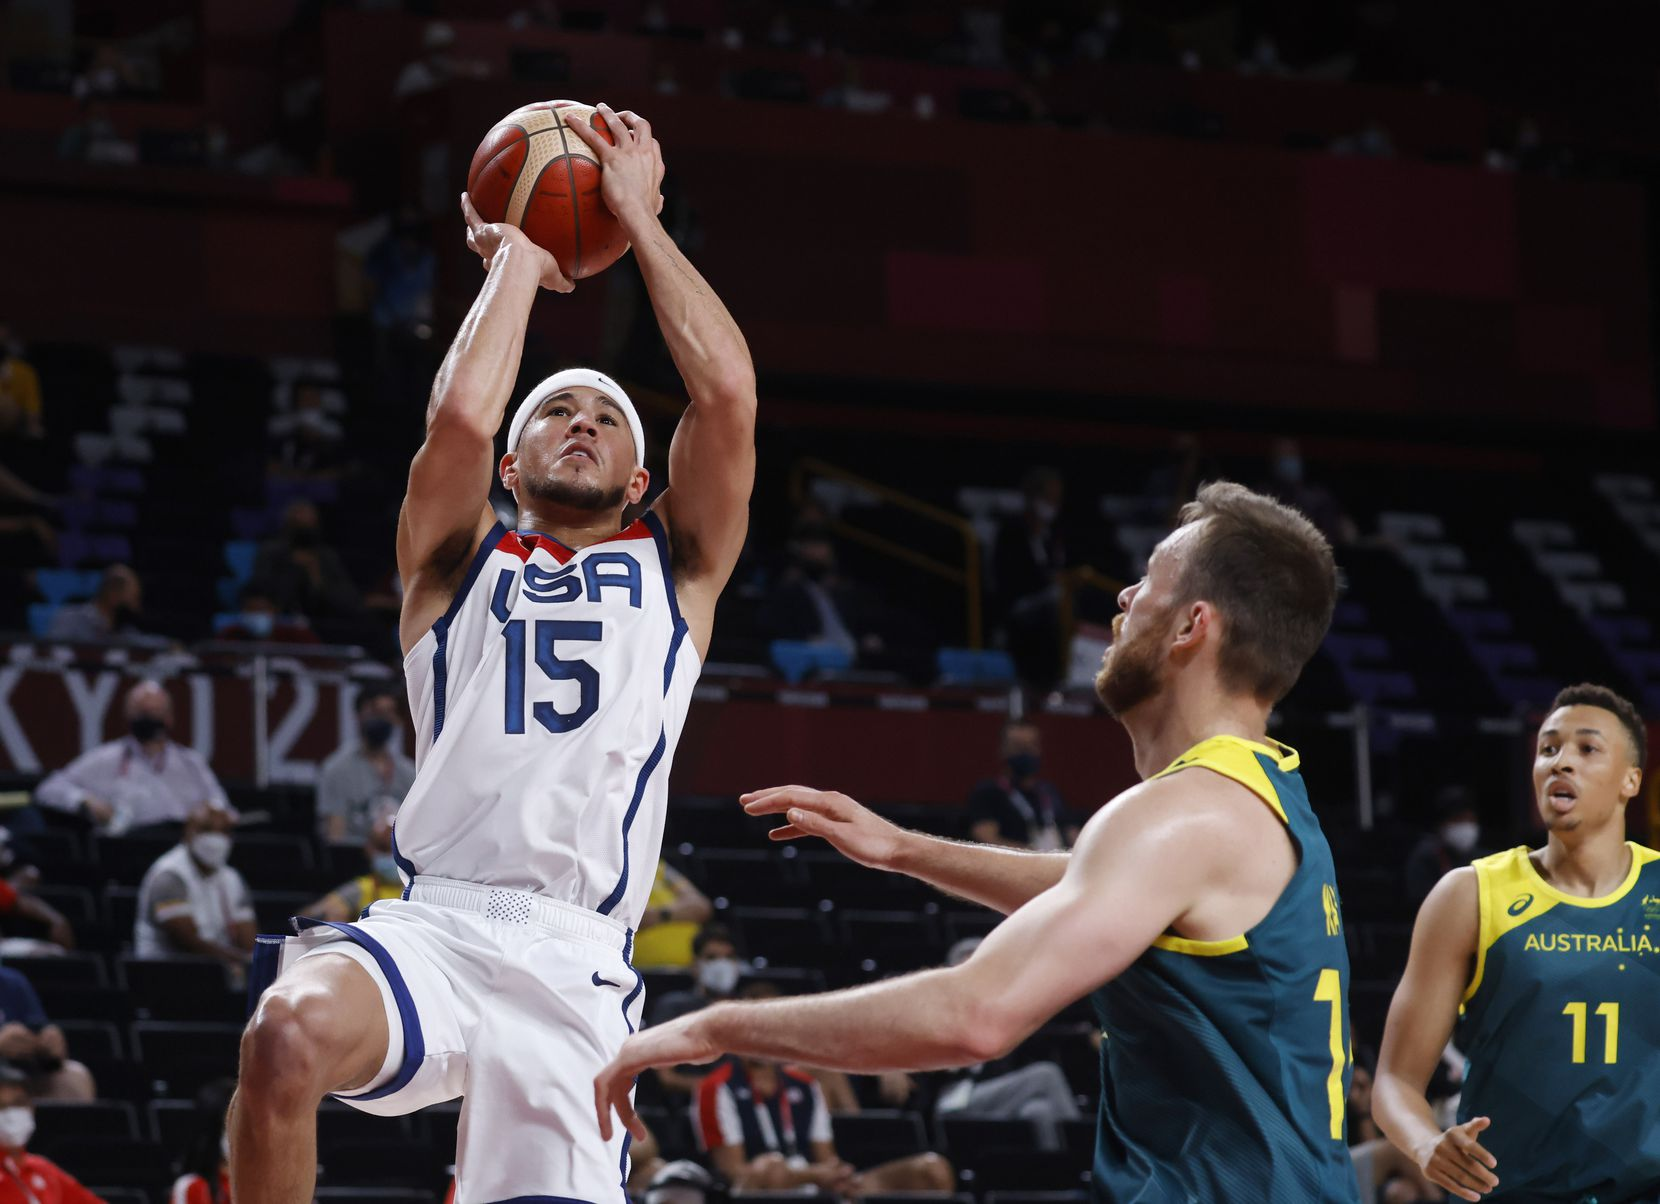 USA's Devin Booker attempts a shot in front of Australia's Nic Kay (15) during the first half of a men's basketball semifinal at the postponed 2020 Tokyo Olympics at Saitama Super Arena, on Thursday, August 5, 2021, in Saitama, Japan. USA defeated Australia 97-78 to advance to the gold medal game. (Vernon Bryant/The Dallas Morning News)